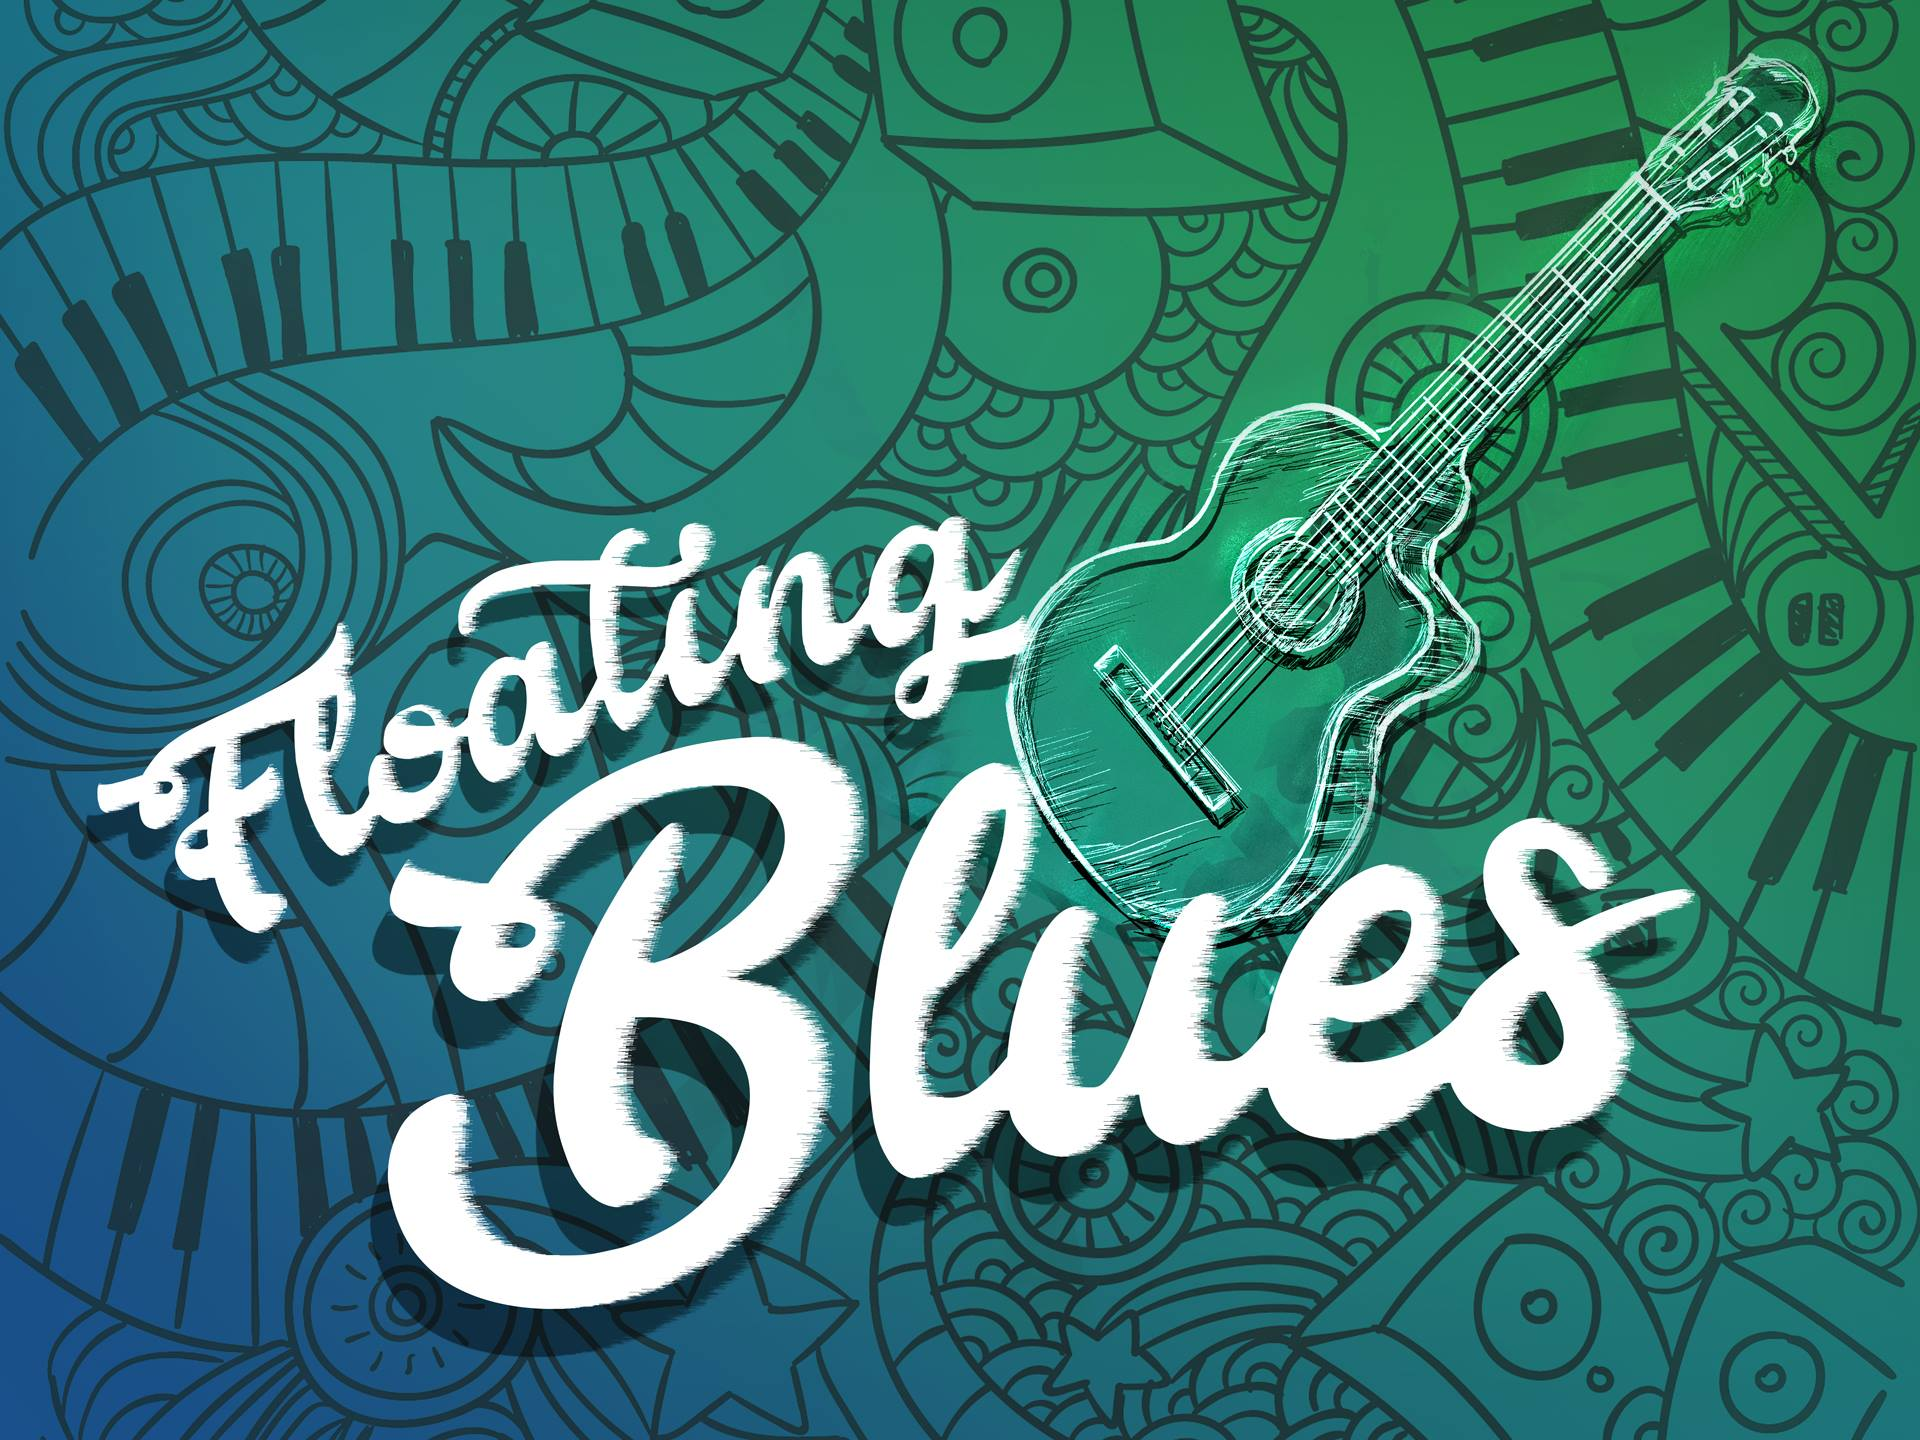 Floating Blues vol.2. - my z delty - koncert na Łasztowni